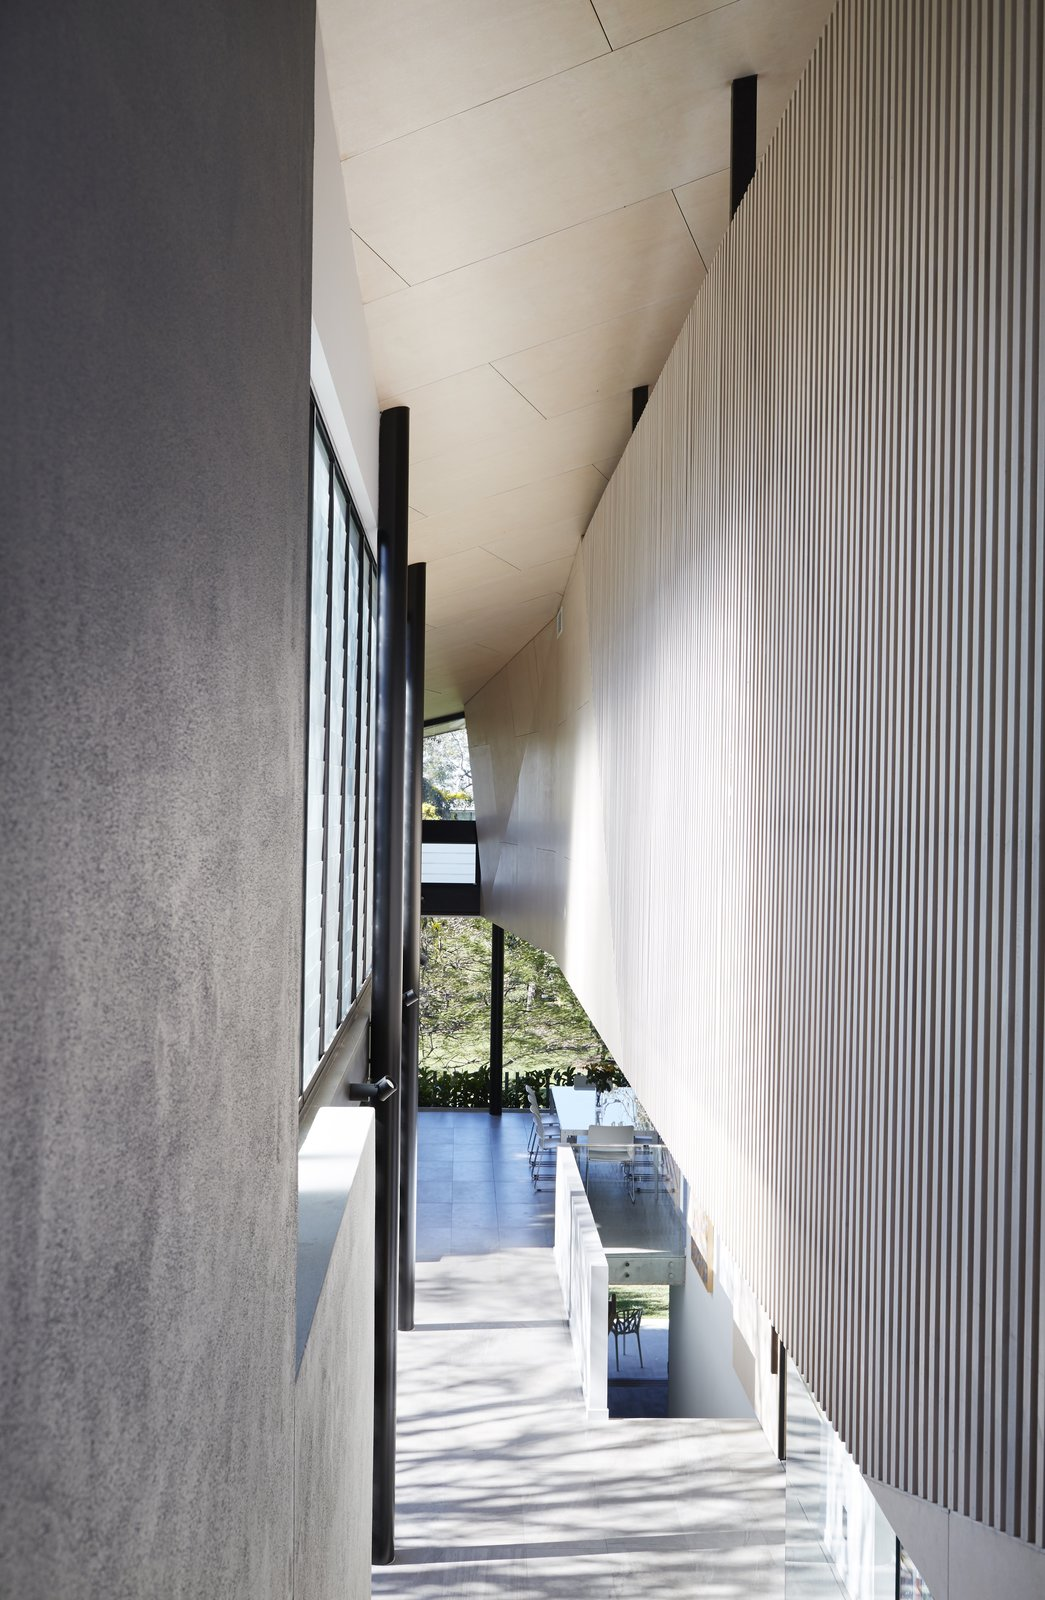 Hallway  Photo 9 of 12 in An Edgy Slatted Facade Conceals a Striking Indoor/Outdoor Home in Brisbane